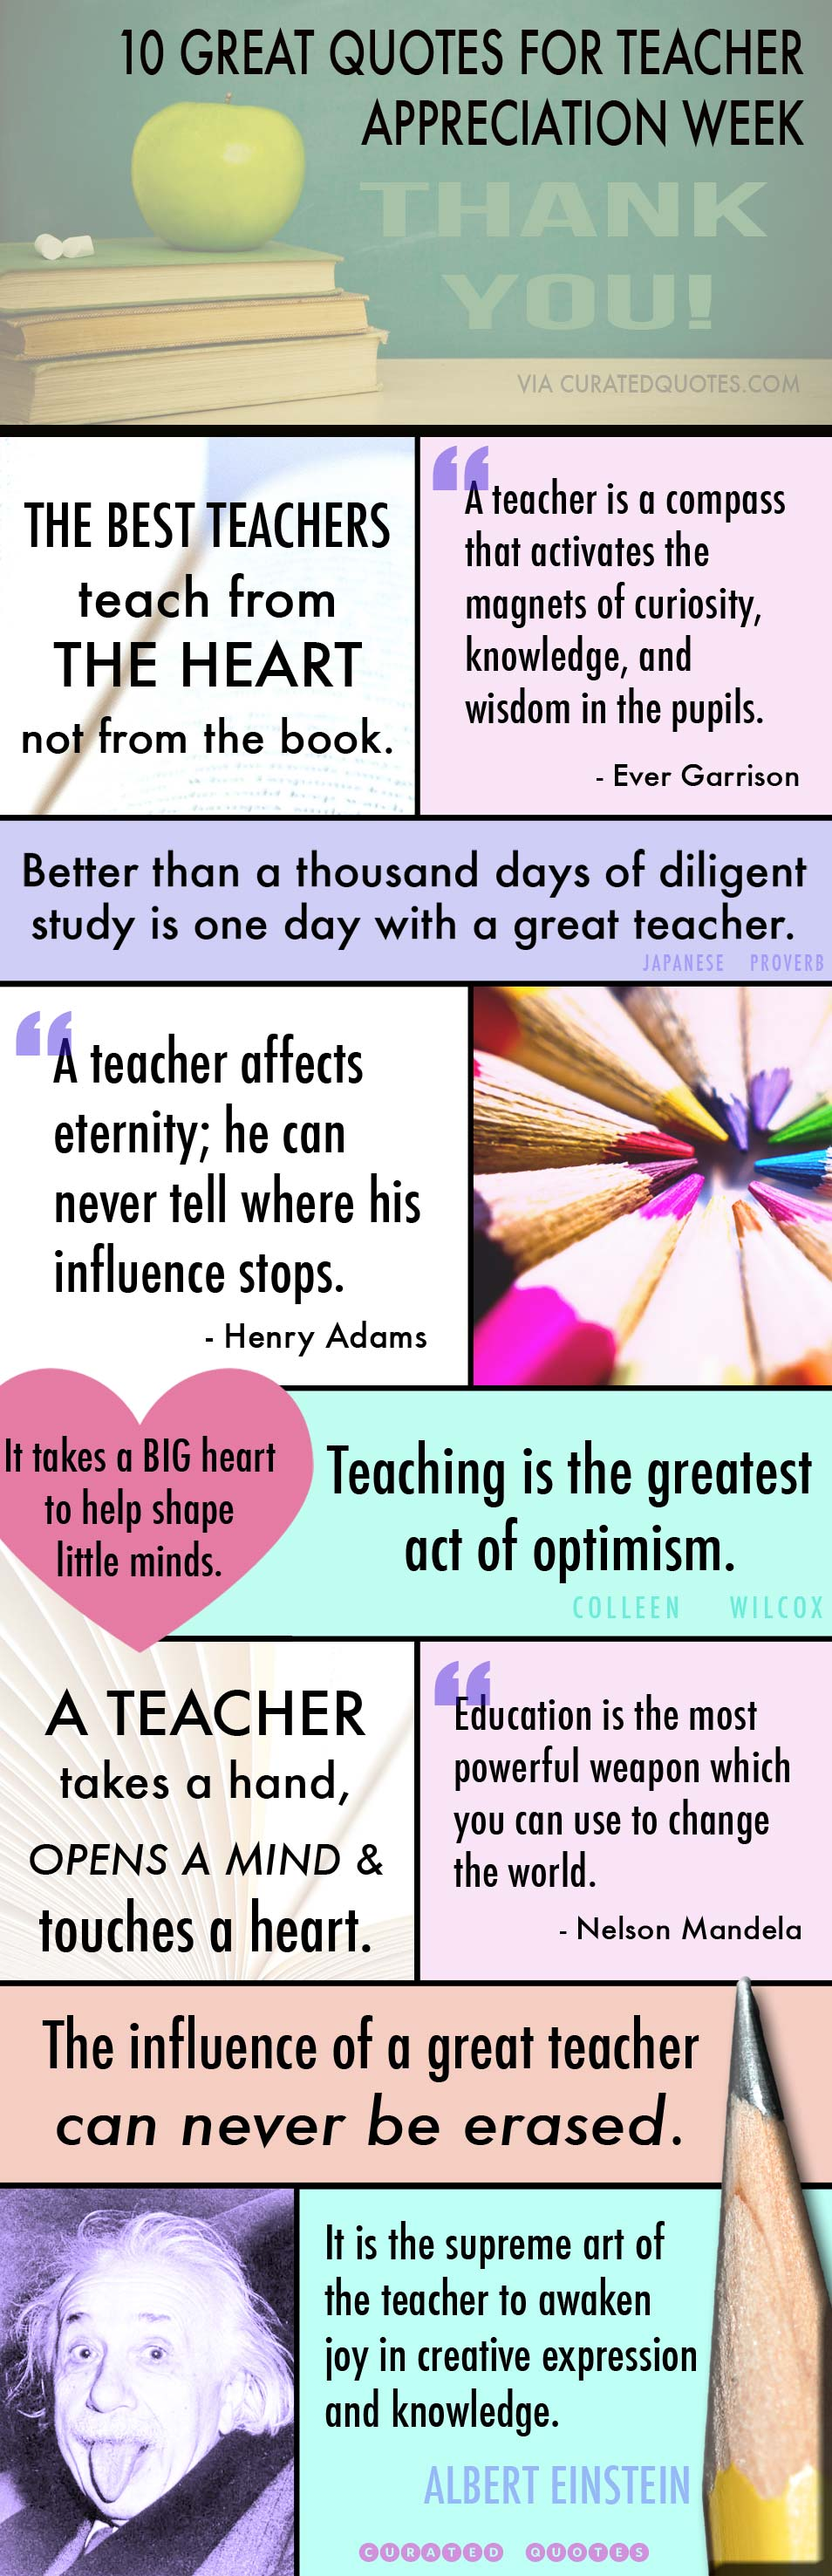 Educator Quotes | 32 Thank You Quotes For Teachers Curated Quotes